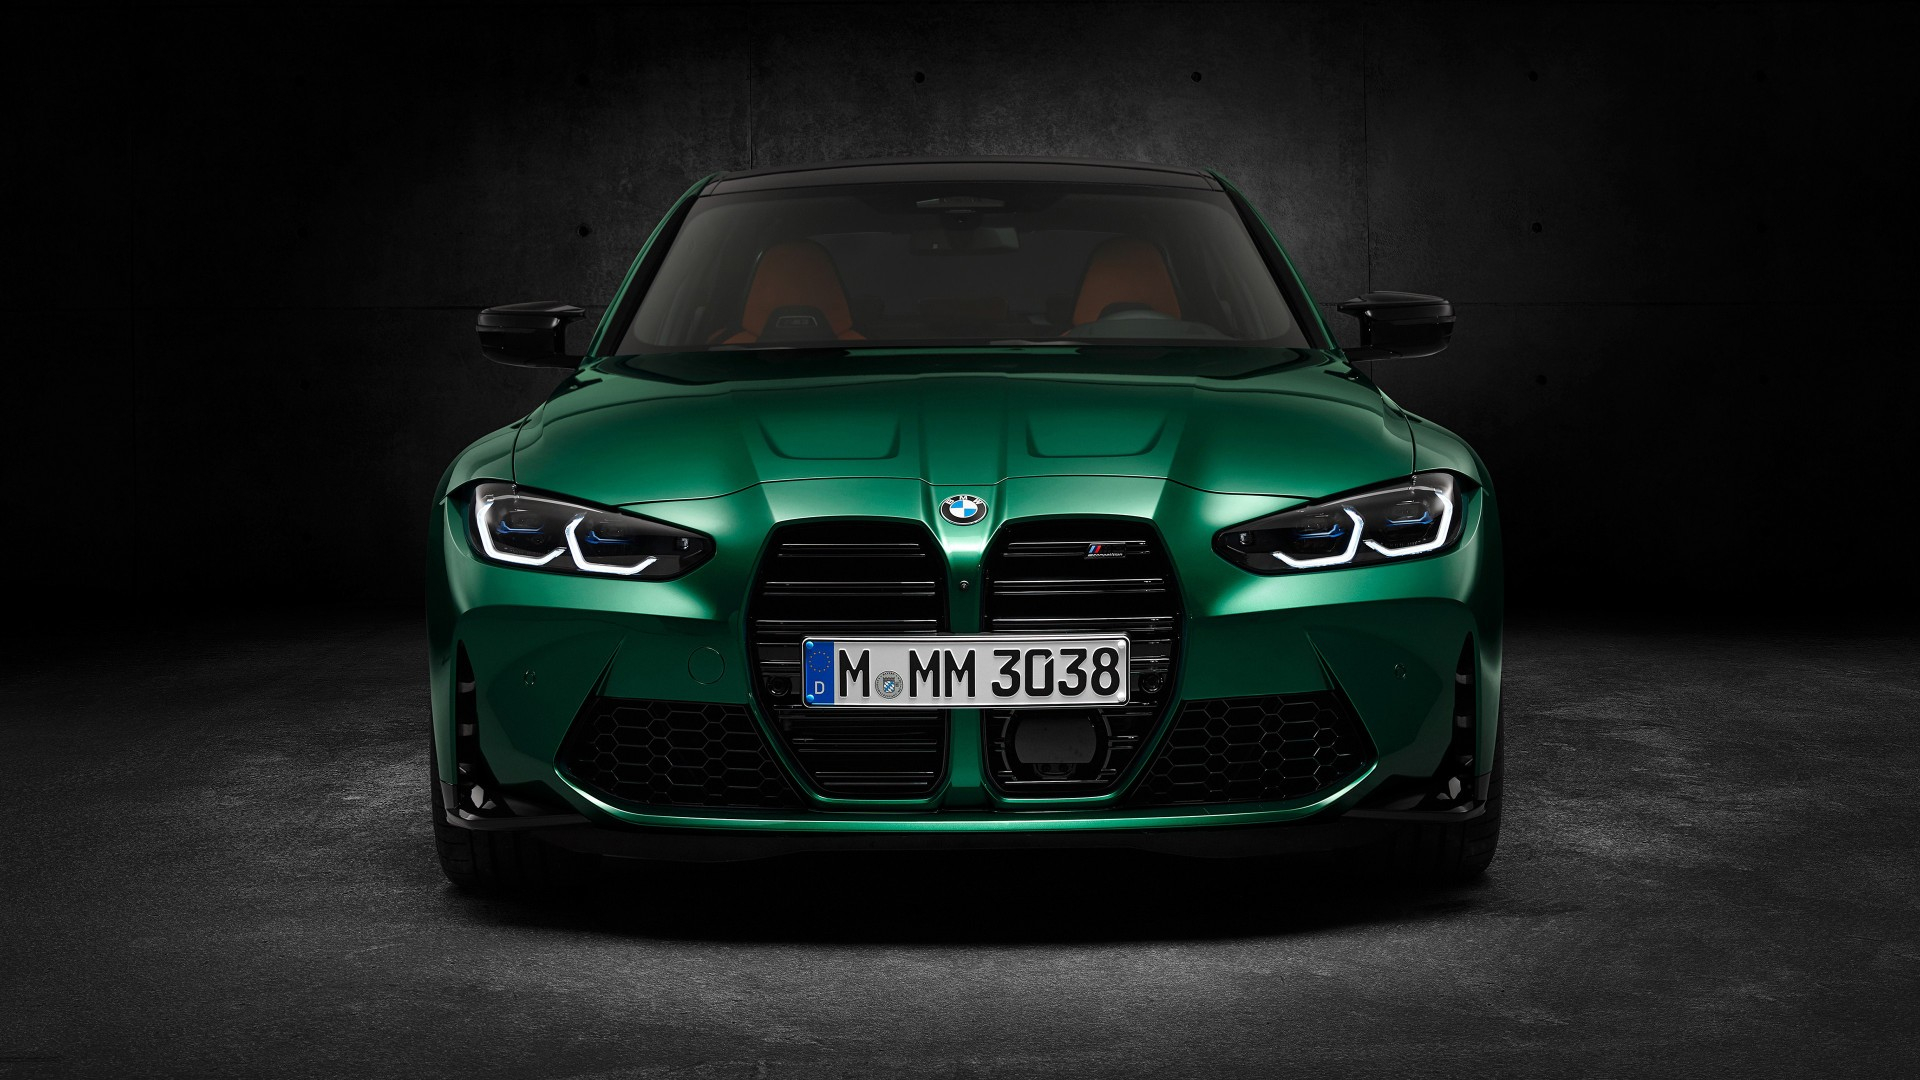 green bmw m3 petition 2020 4k hd cars wallpapers